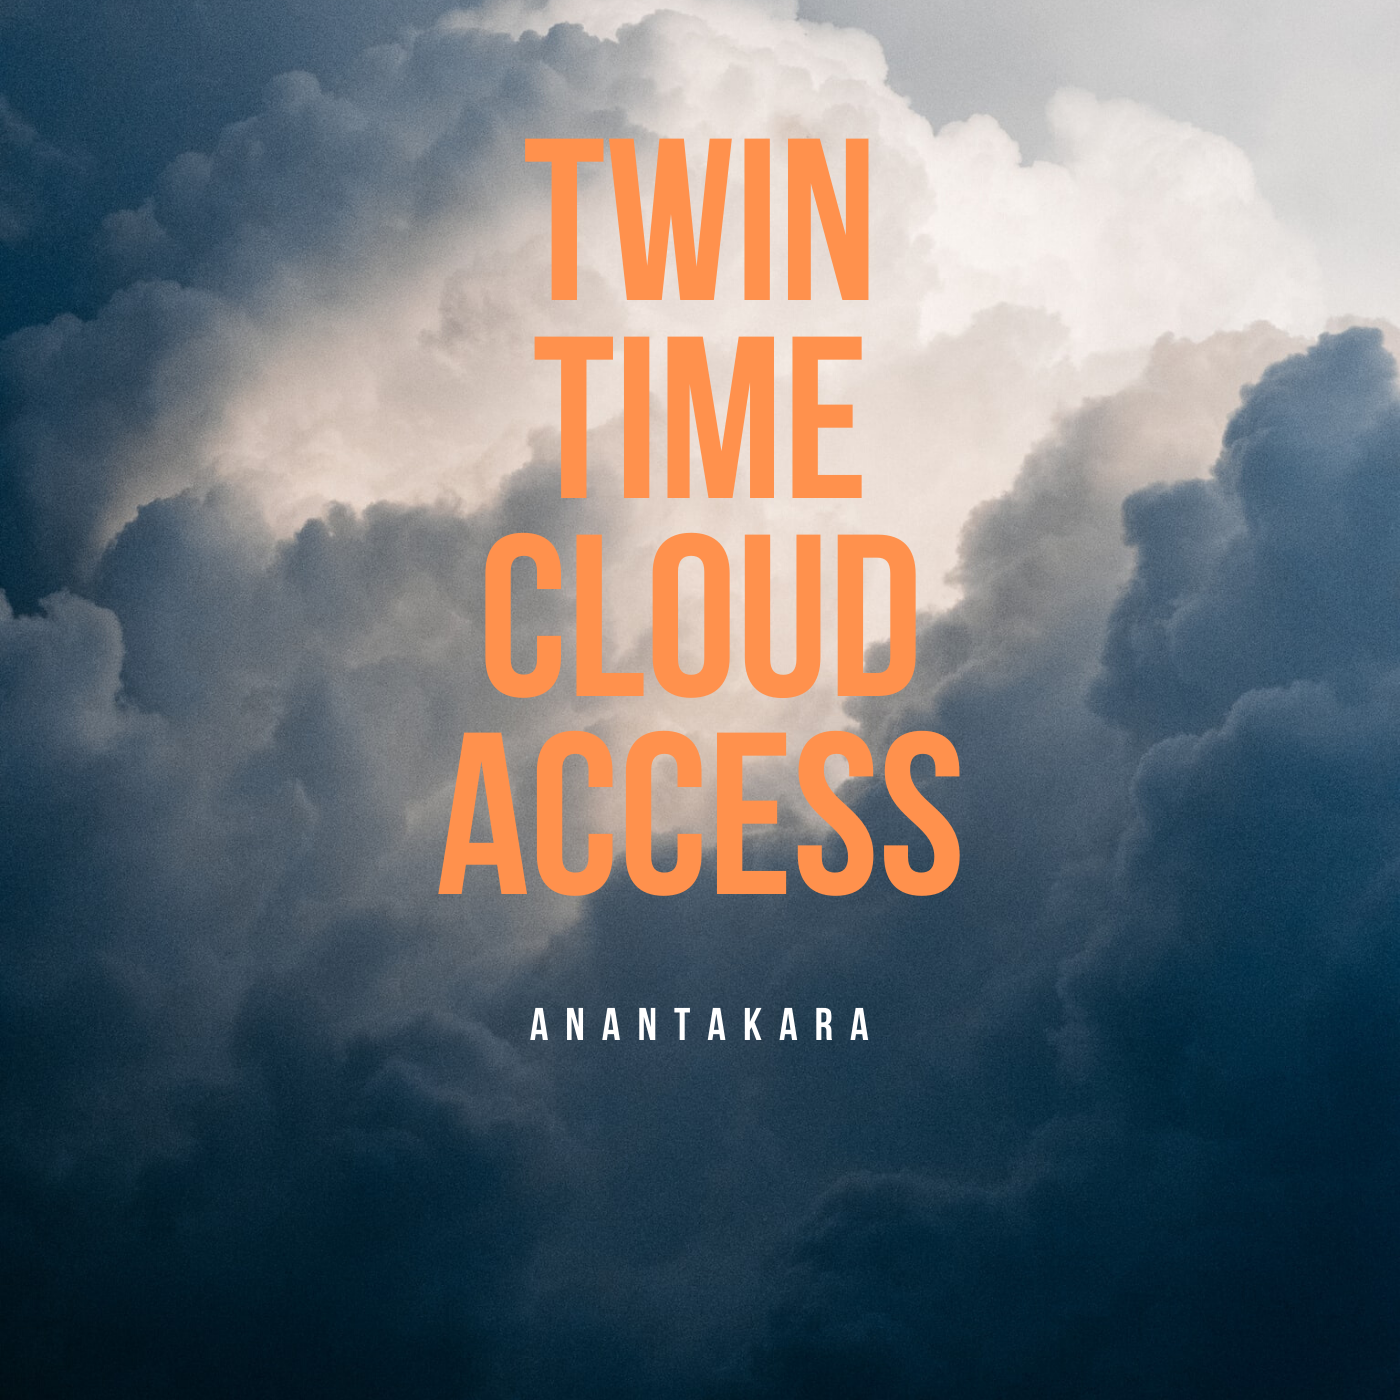 twin time cloud access